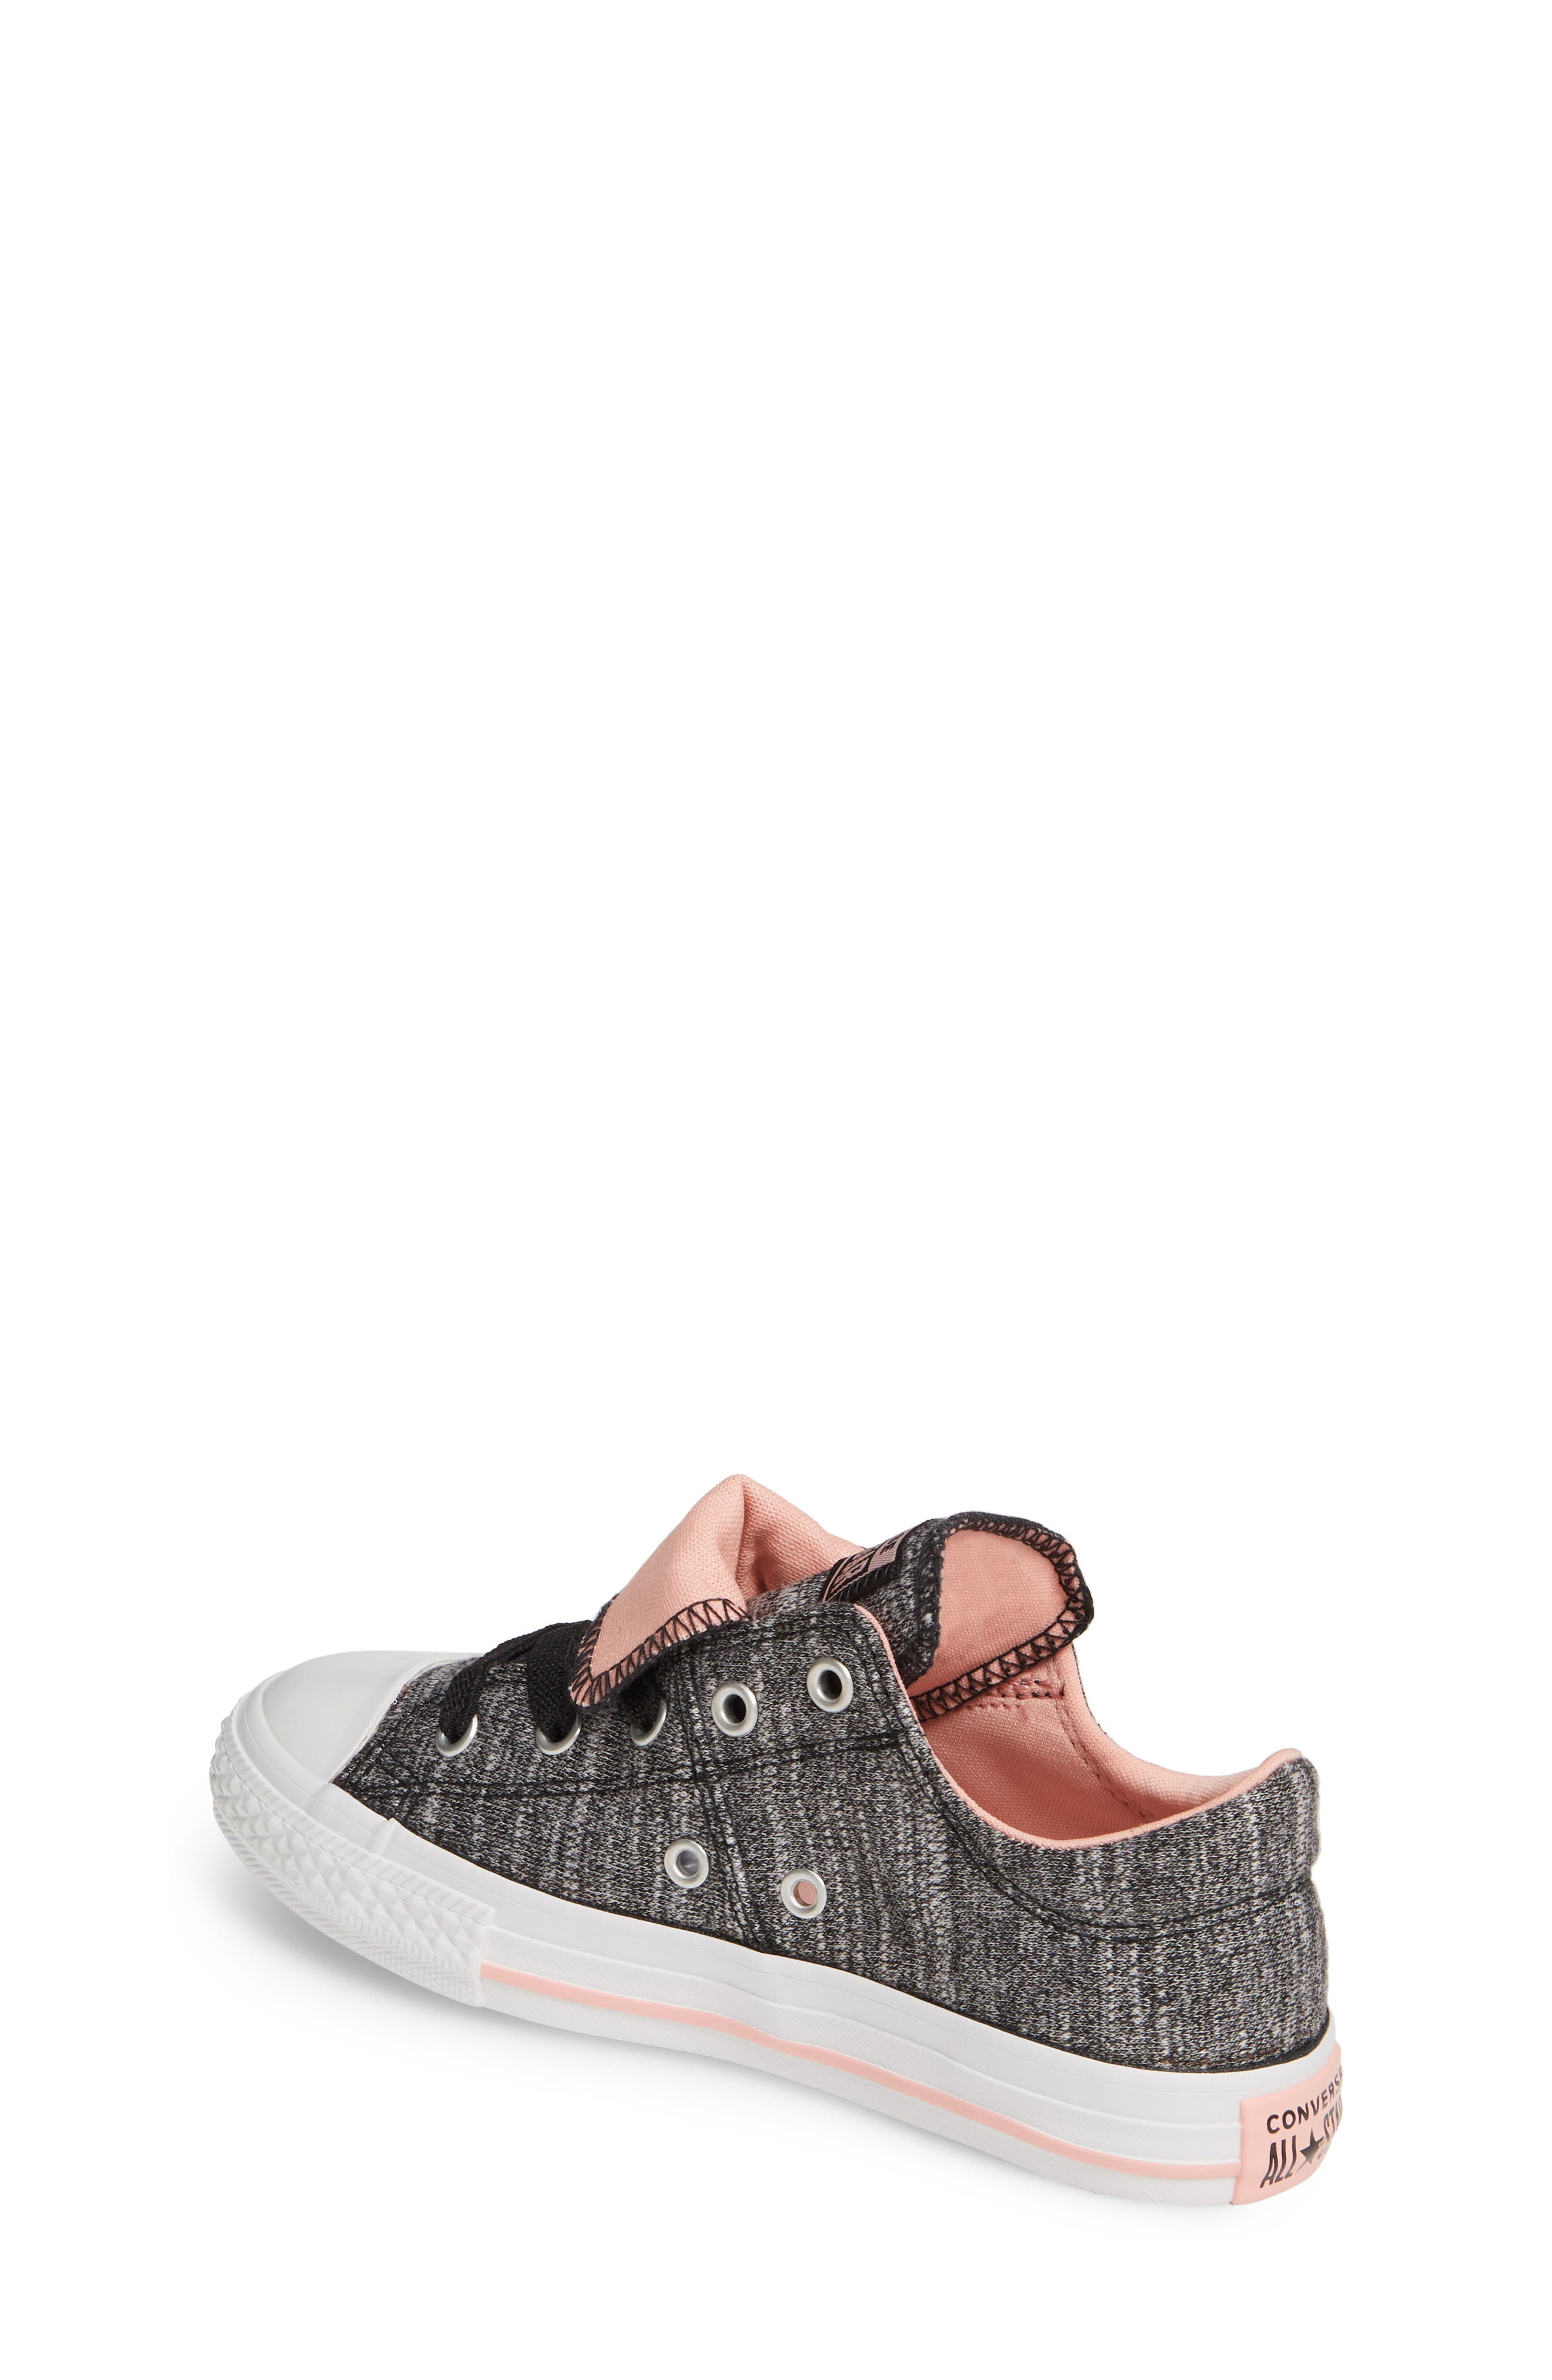 ,                             Chuck Taylor<sup>®</sup> All Star<sup>®</sup> Maddie Double Tongue Sneaker,                             Alternate thumbnail 8, color,                             002